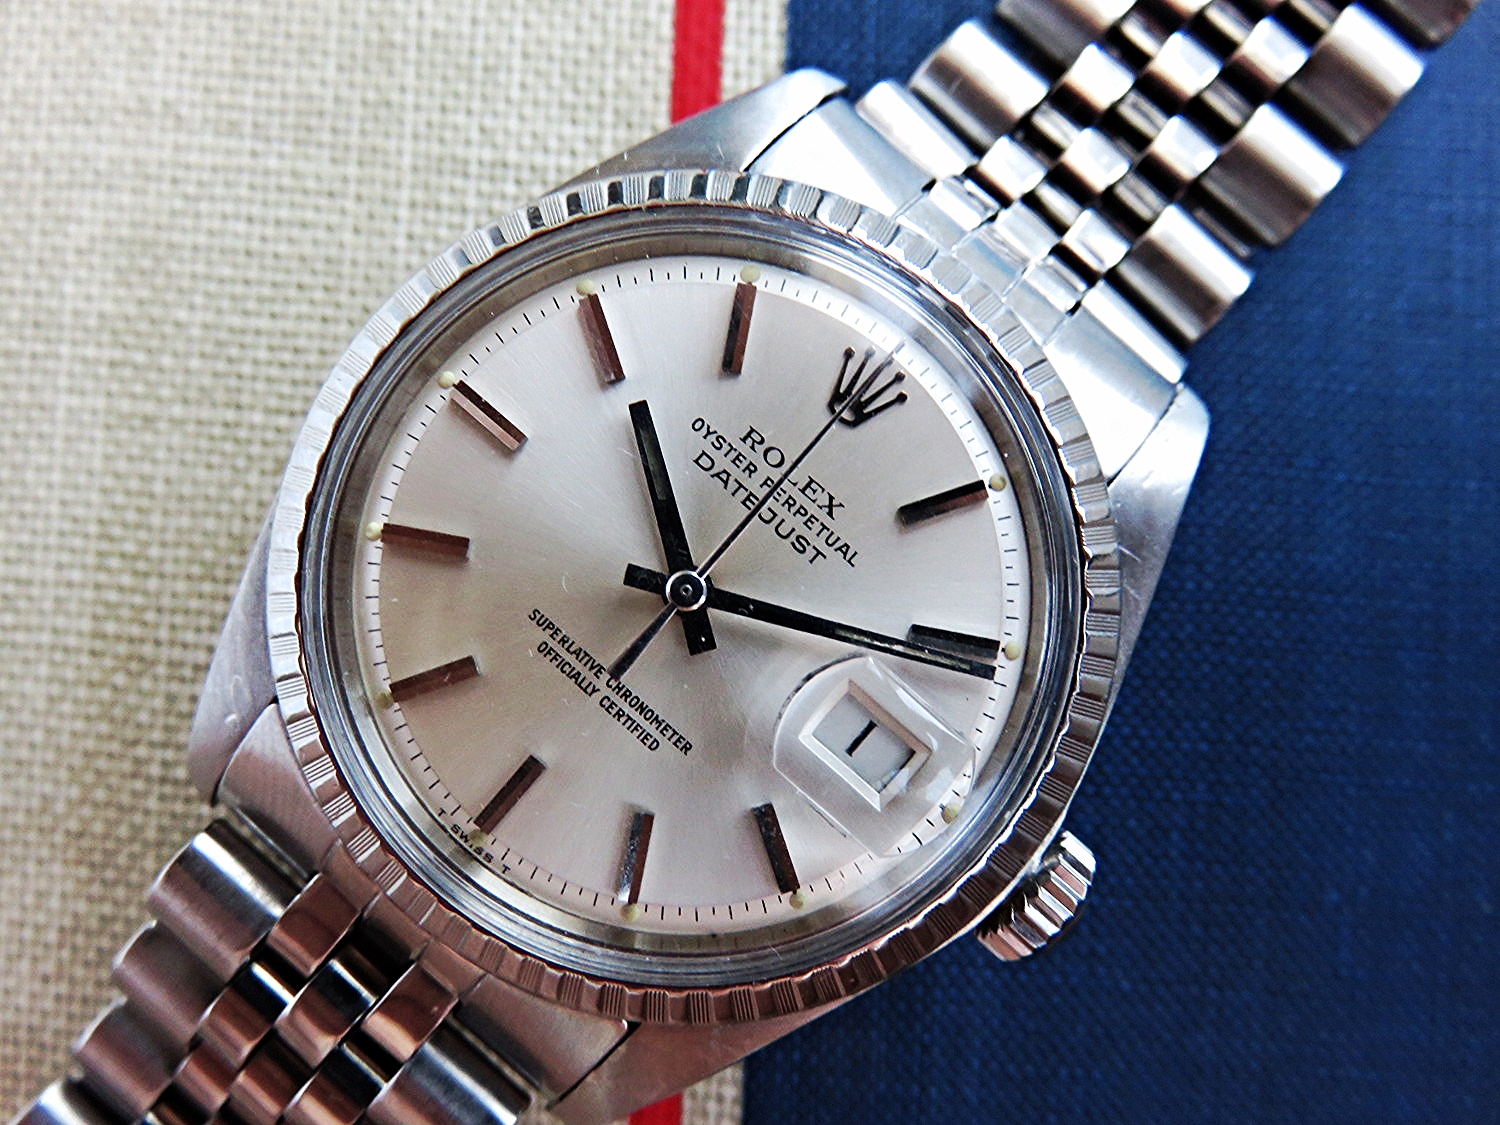 Rolex Datejust Reference 1603 Silver Dial The Watch Adviser